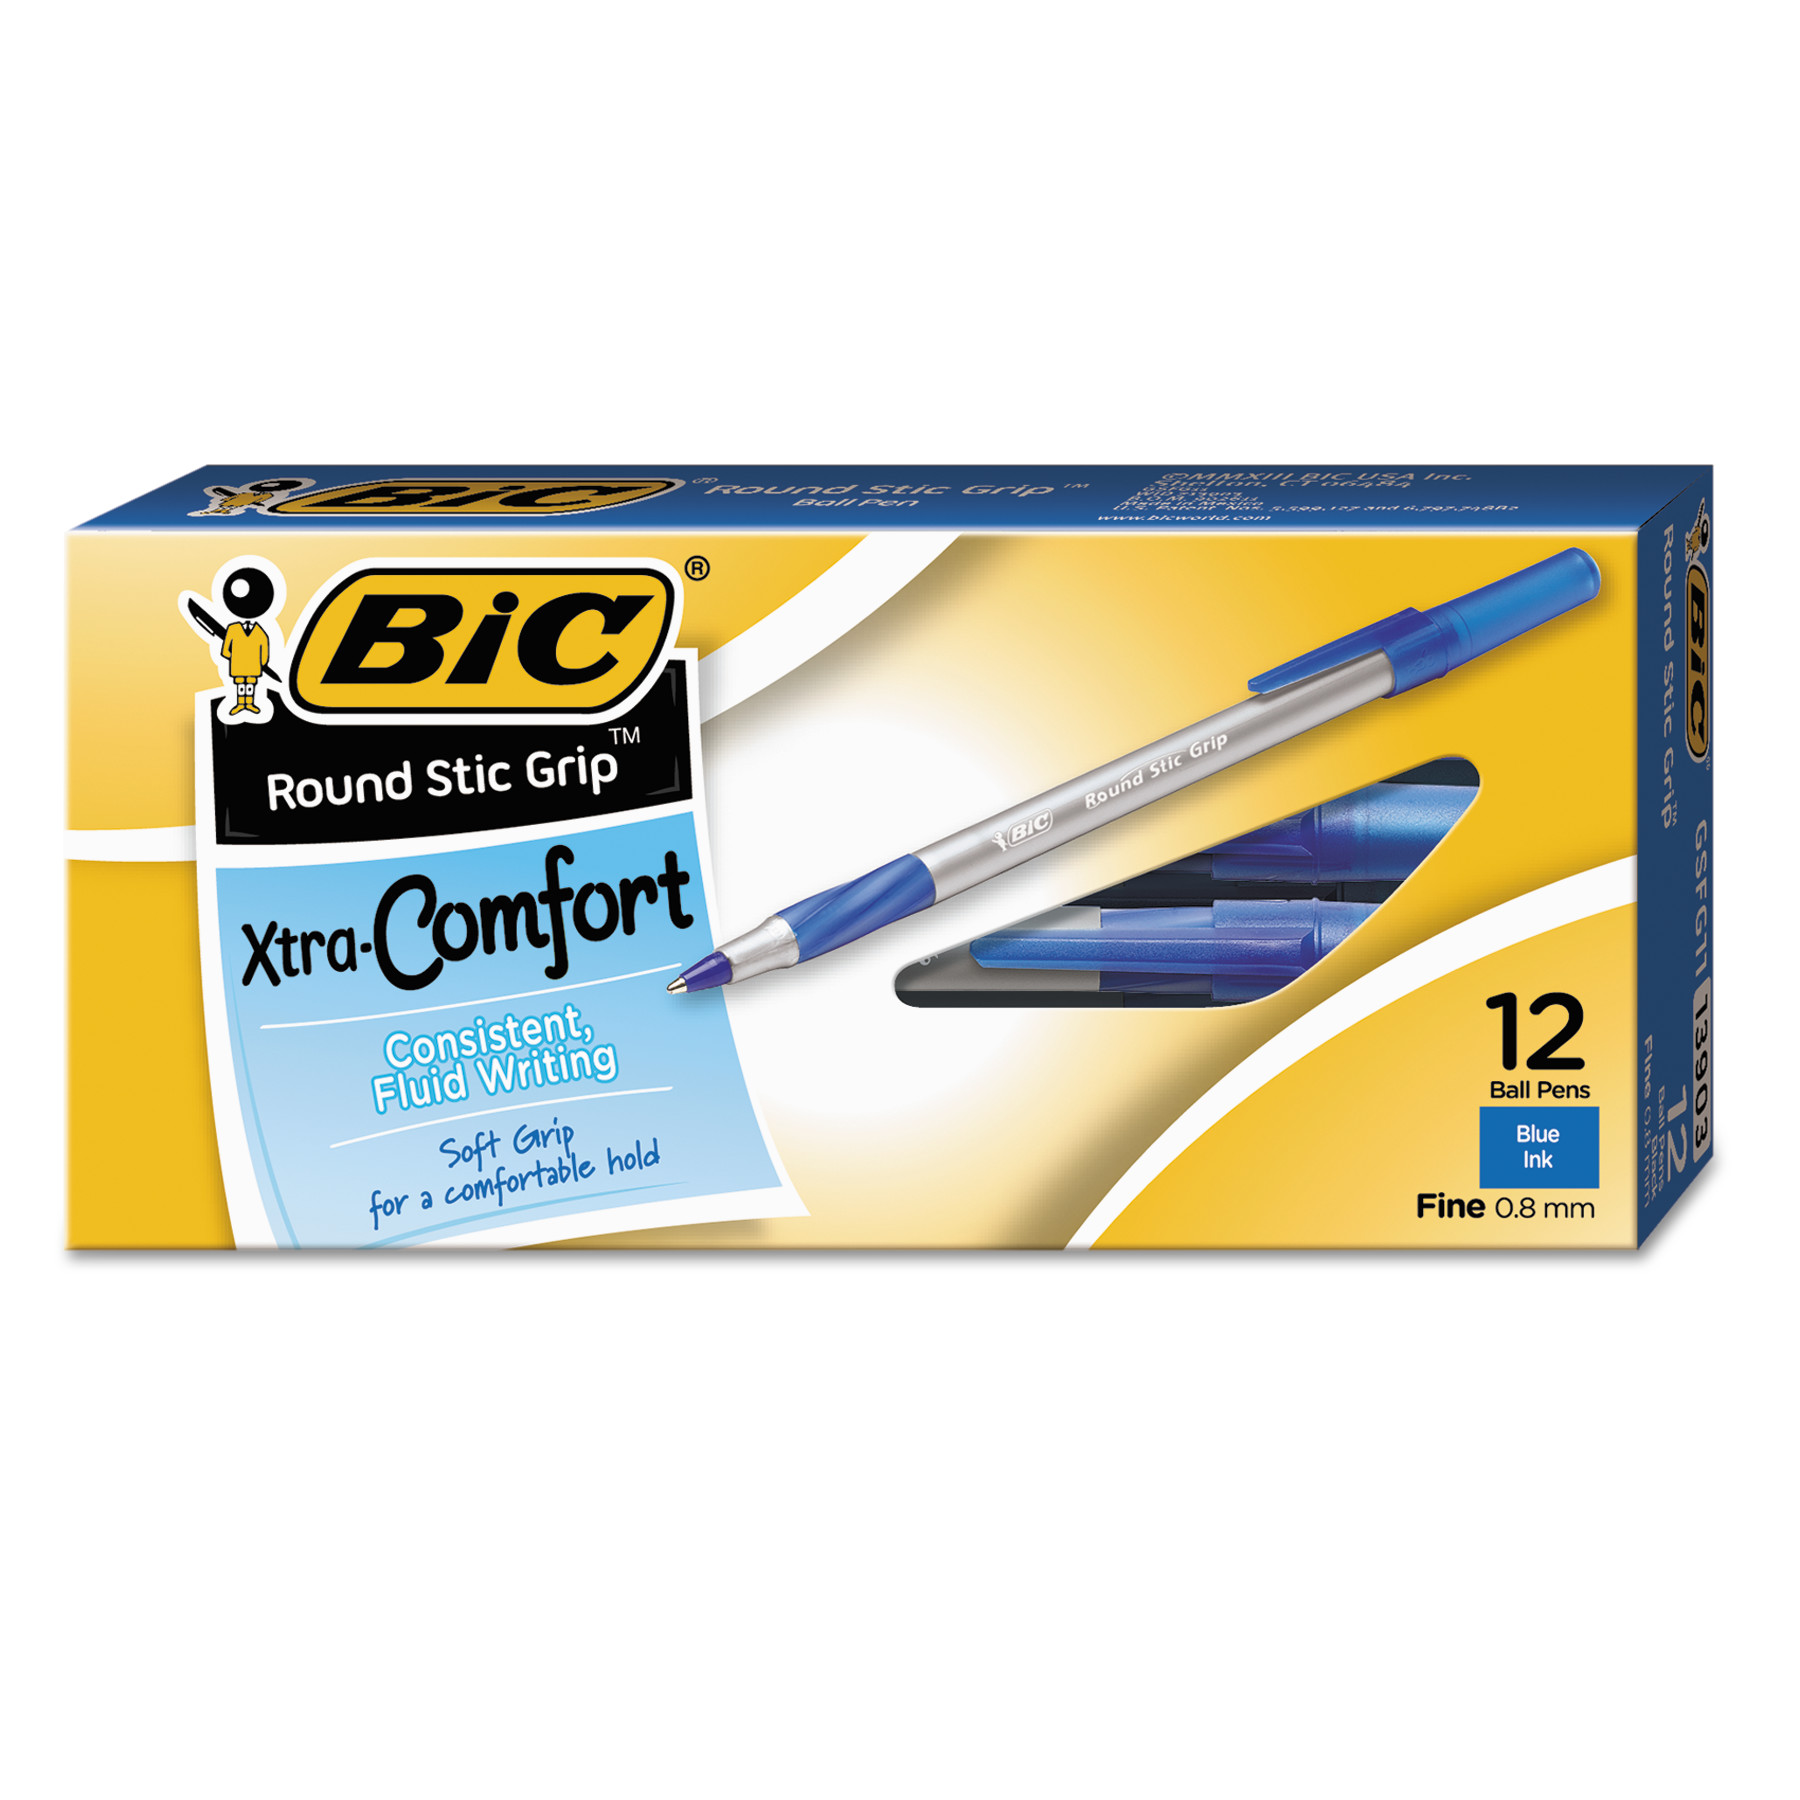 BIC Xtra Comfort Round Stic Grip Pens, 0.8 mm Fine Tip, Blue, 12 Count